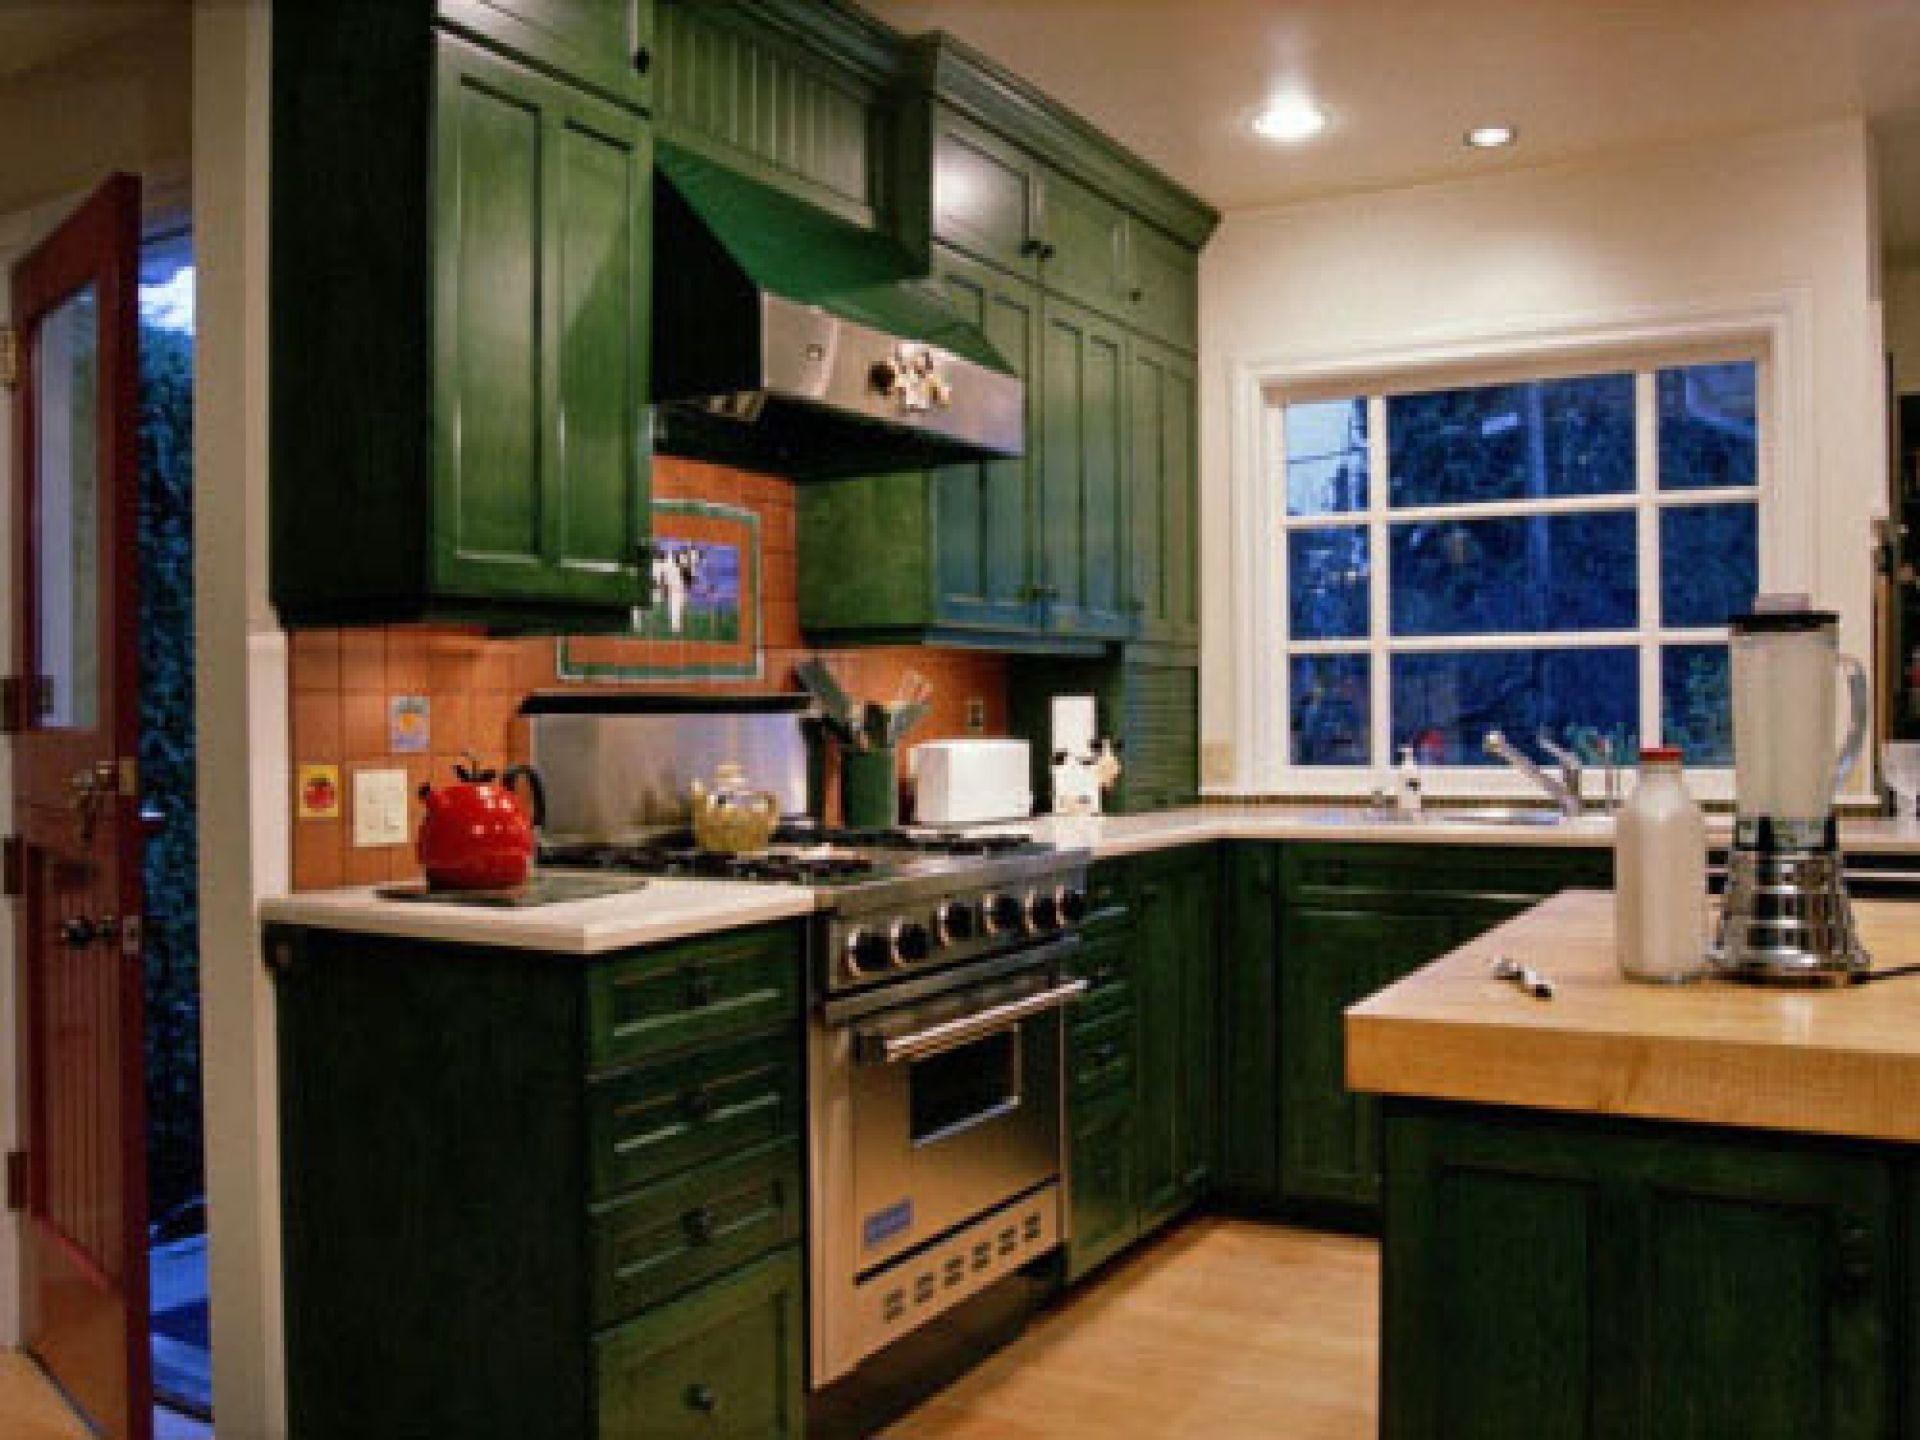 Dark Green Stained Cabinets Google Search Cheap Kitchen Remodel Simple Kitchen Remodel Green Kitchen Cabinets